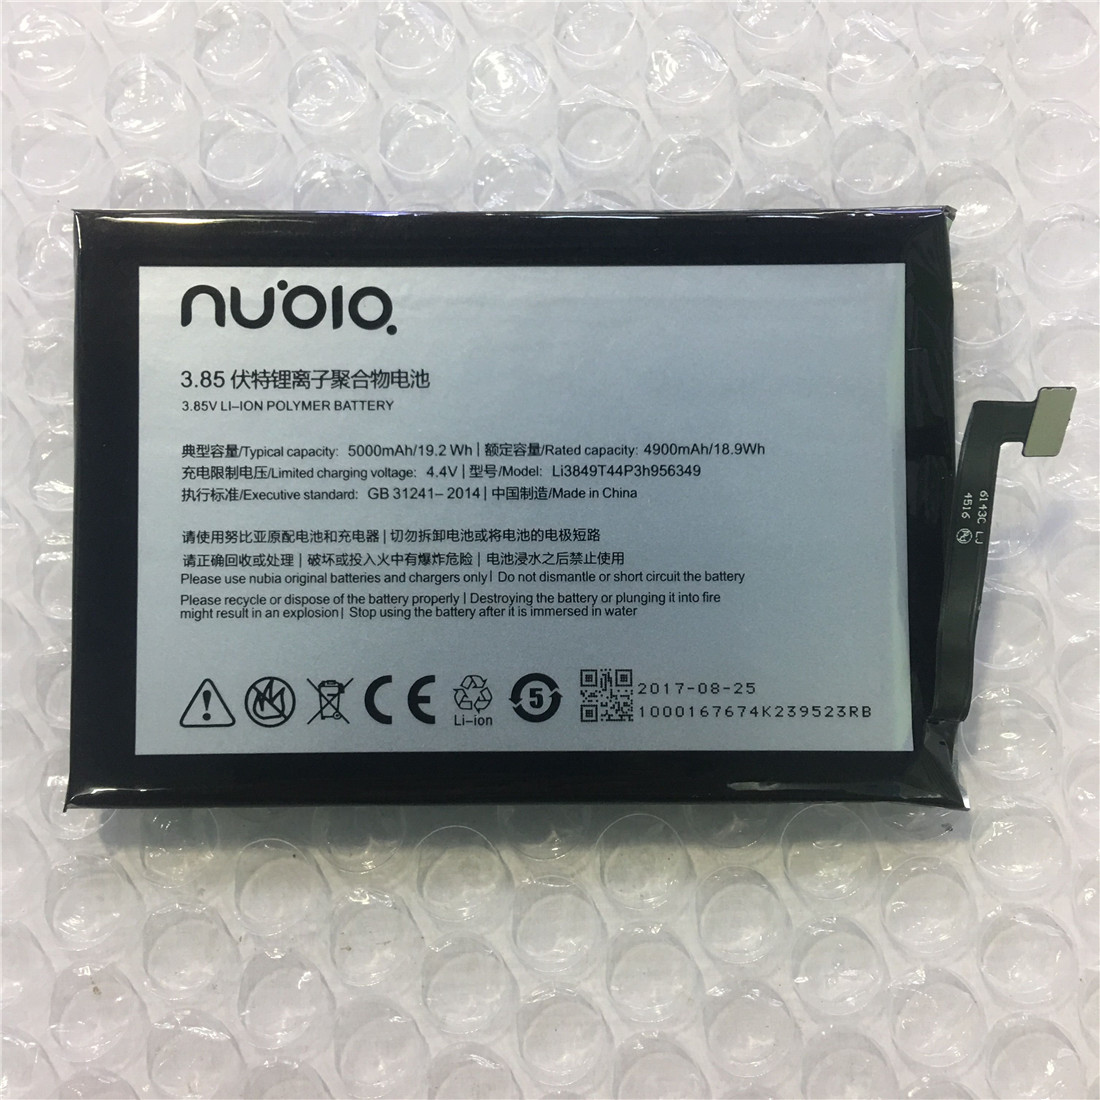 3.85V 5000mAh Li3849T44P3h956349 For ZTE Nubia N1 NX541J Battery3.85V 5000mAh Li3849T44P3h956349 For ZTE Nubia N1 NX541J Battery